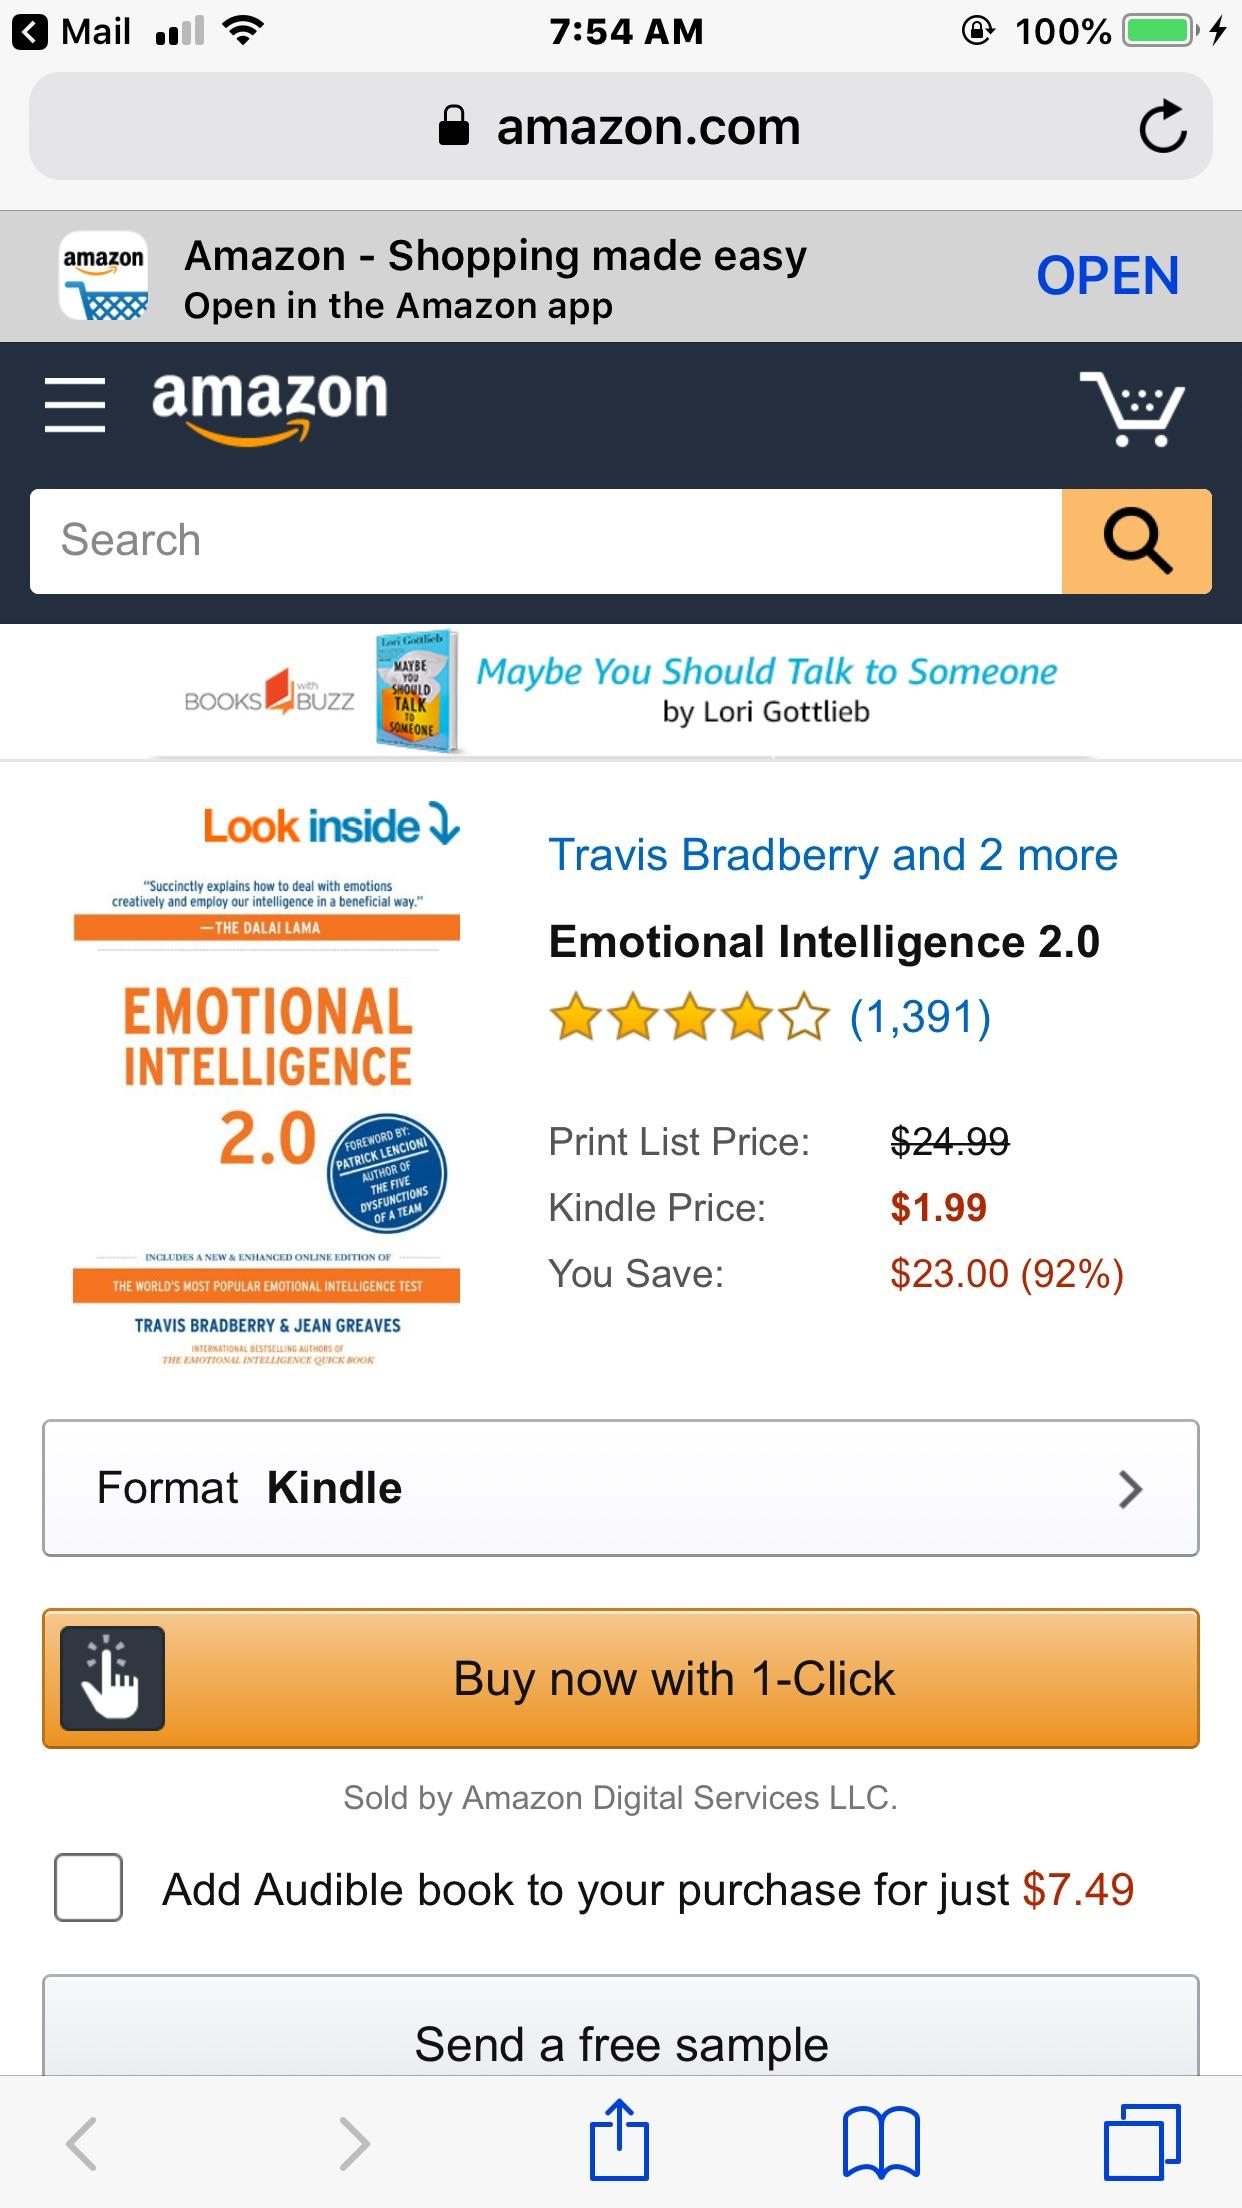 Audible App By Amazon Emotional Intelligence 2 1 99 Kindle Add Audible For